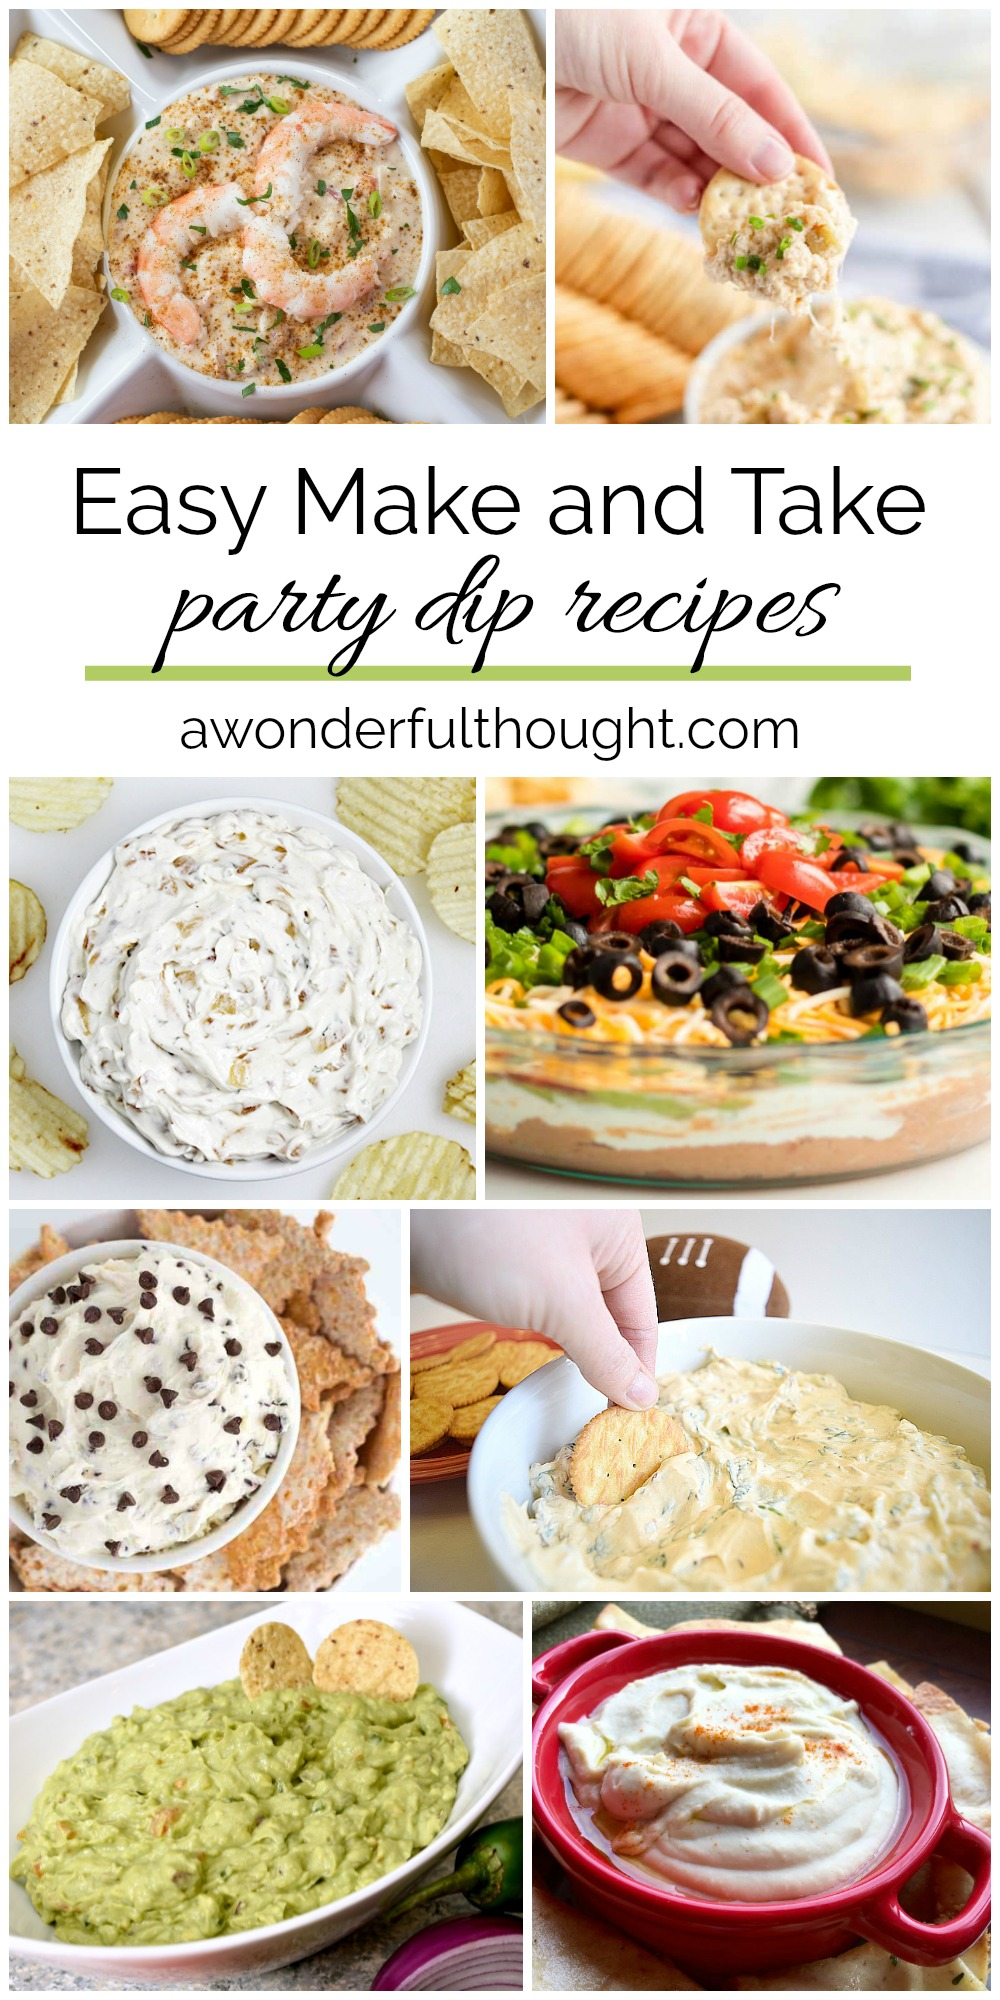 Easy Make And Take Party Dip Recipes A Wonderful Thought